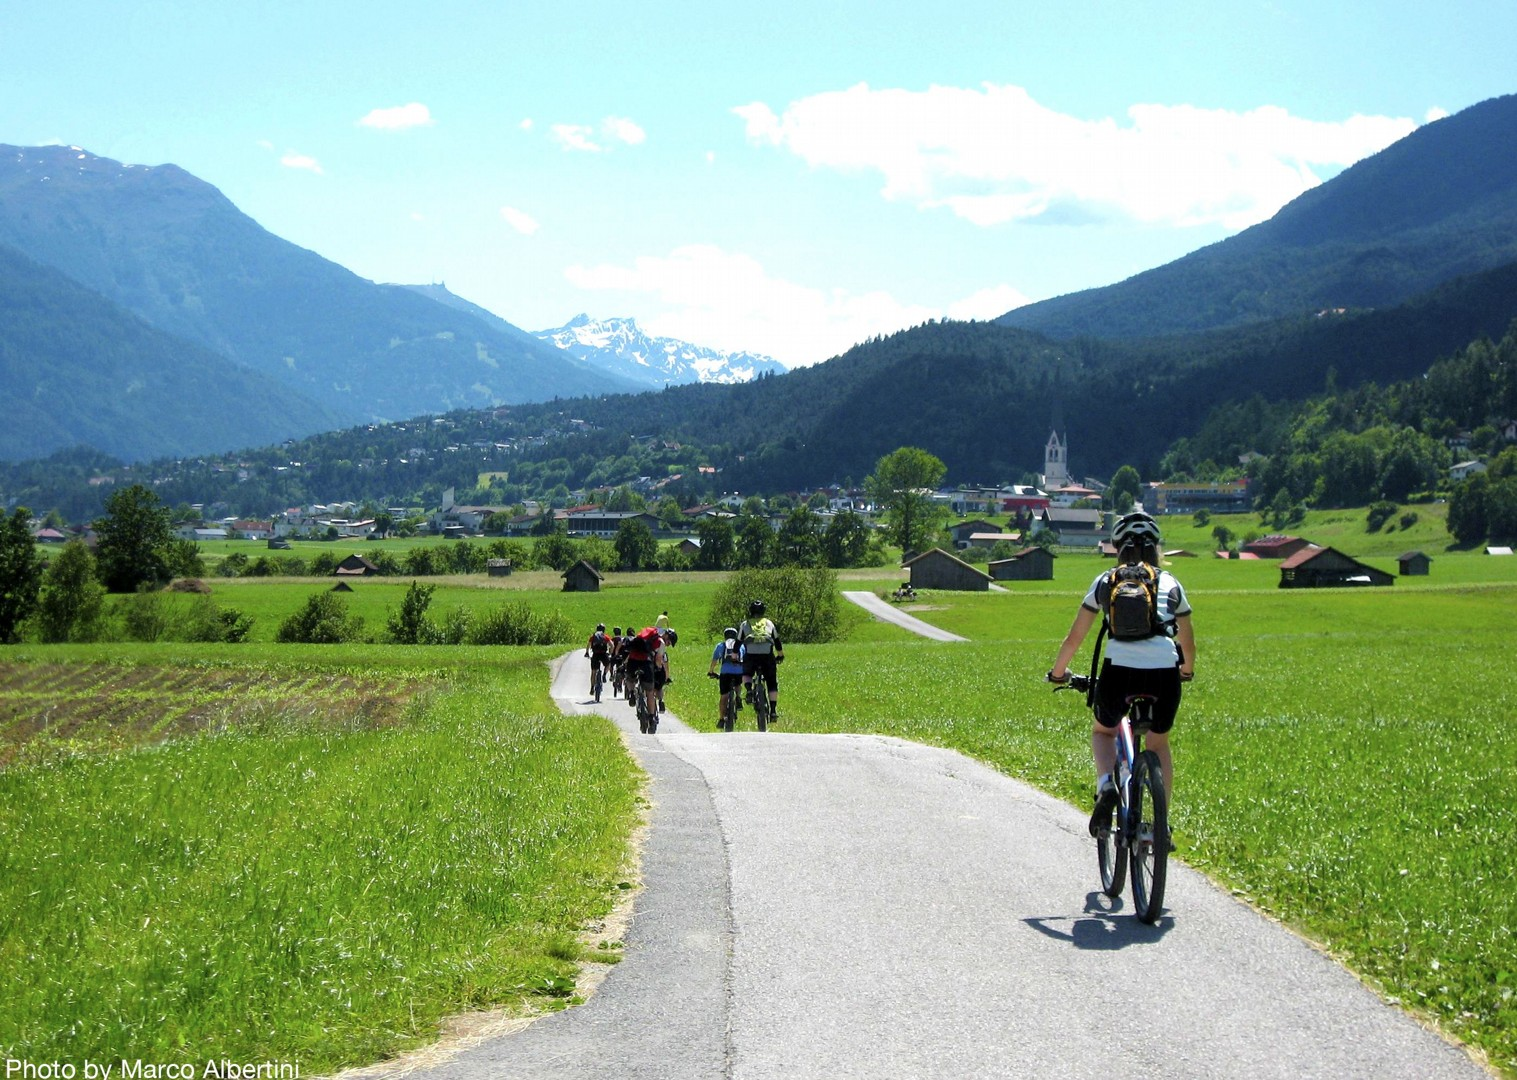 idylic-scenery-self-guided-cycling-adventure.jpg - Austria and Italy - La Via Claudia - Guided Leisure Cycling Holiday - Italia Leisure and Family Cycling